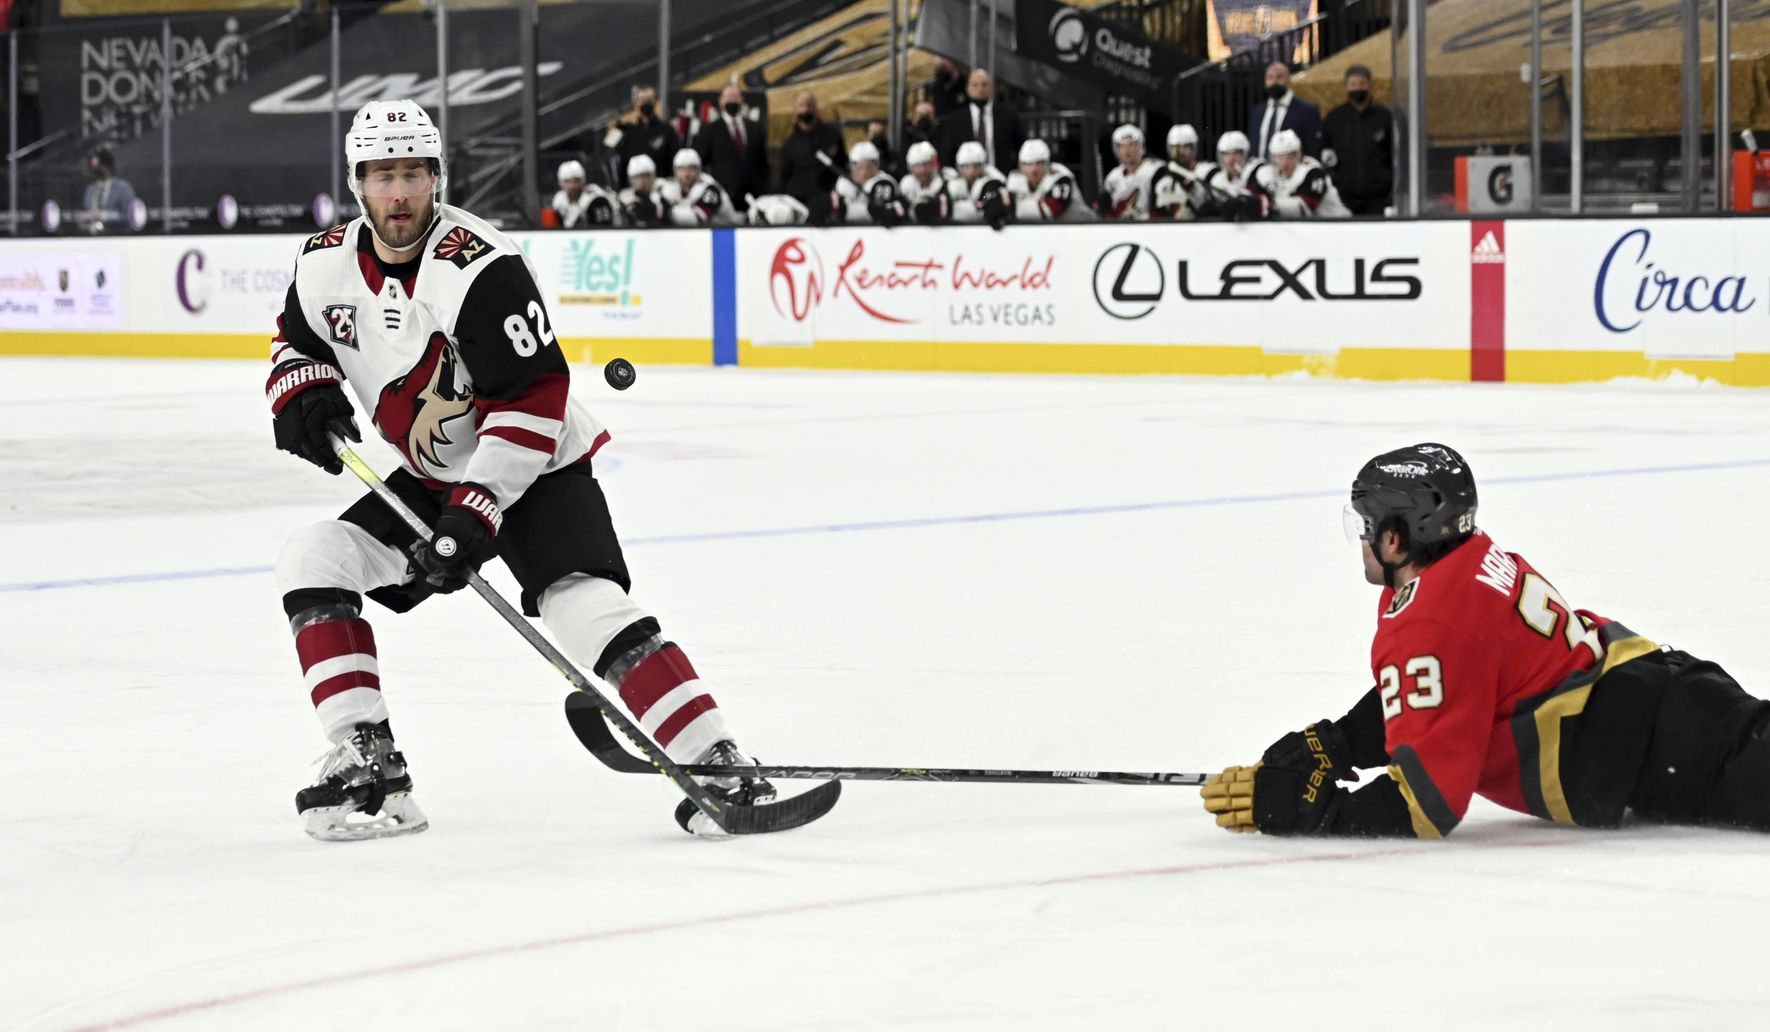 Smith scores 2 as Golden Knights beat Coyotes 7-4